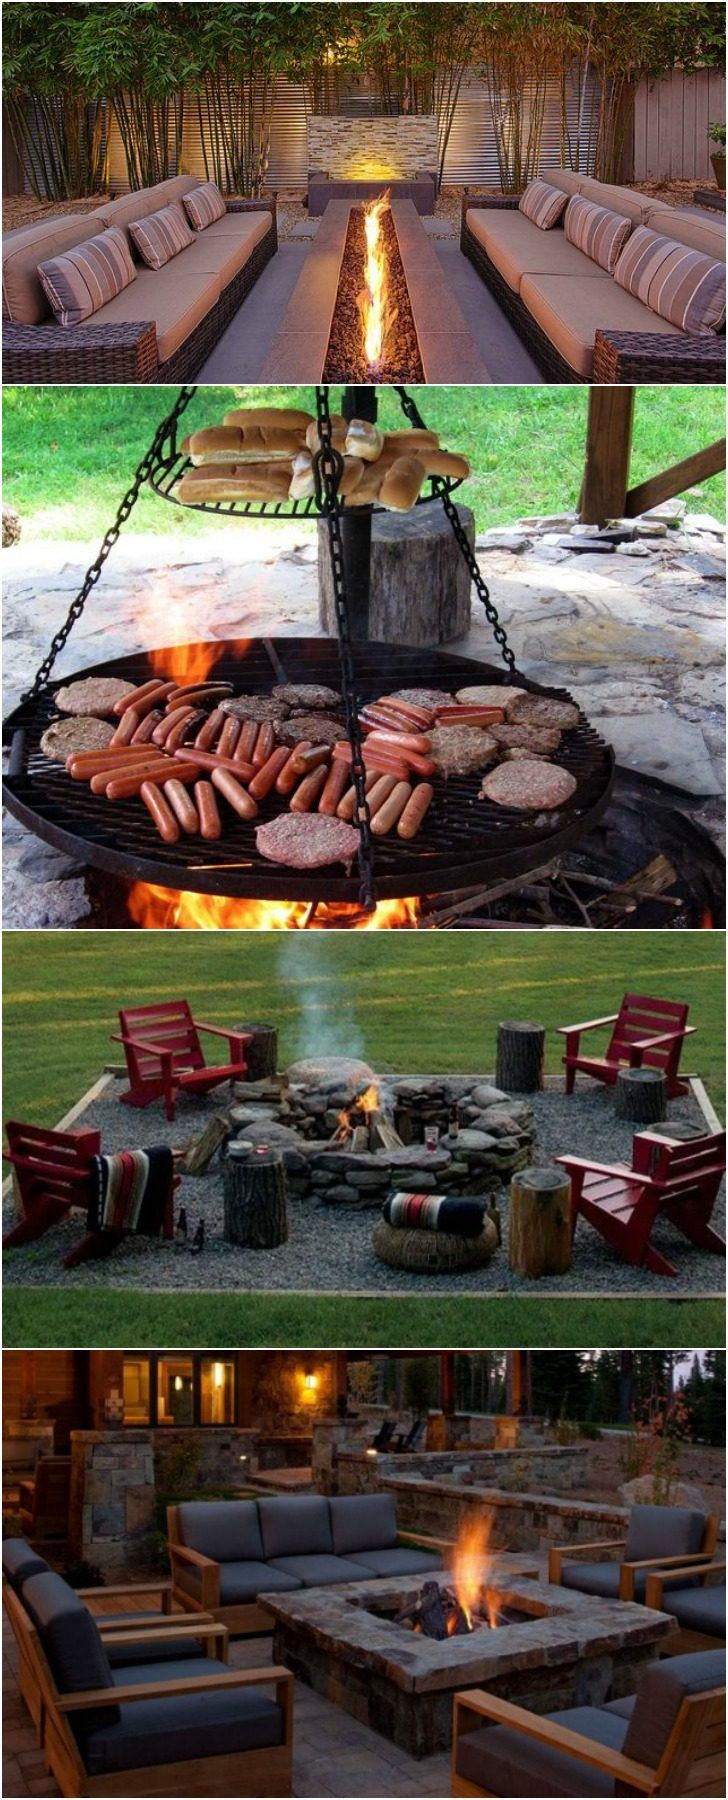 10 Outdoor Firepits Your Boss Wants to Have Grills, Bbq Fire Pits Landscapes